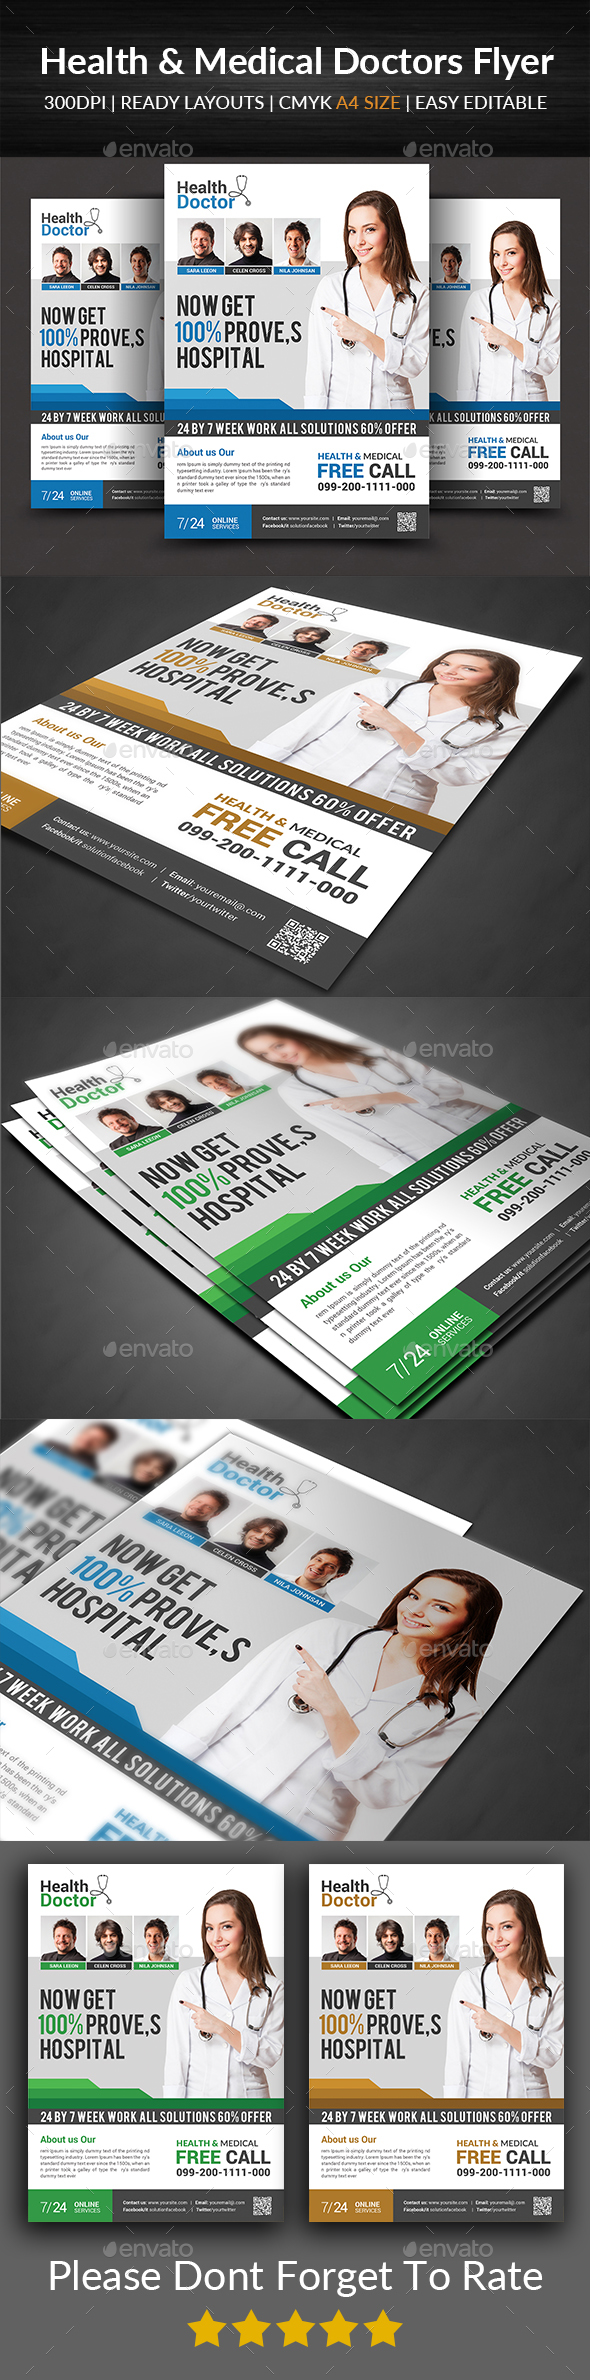 Health & Medical Doctors Flyer - Corporate Flyers